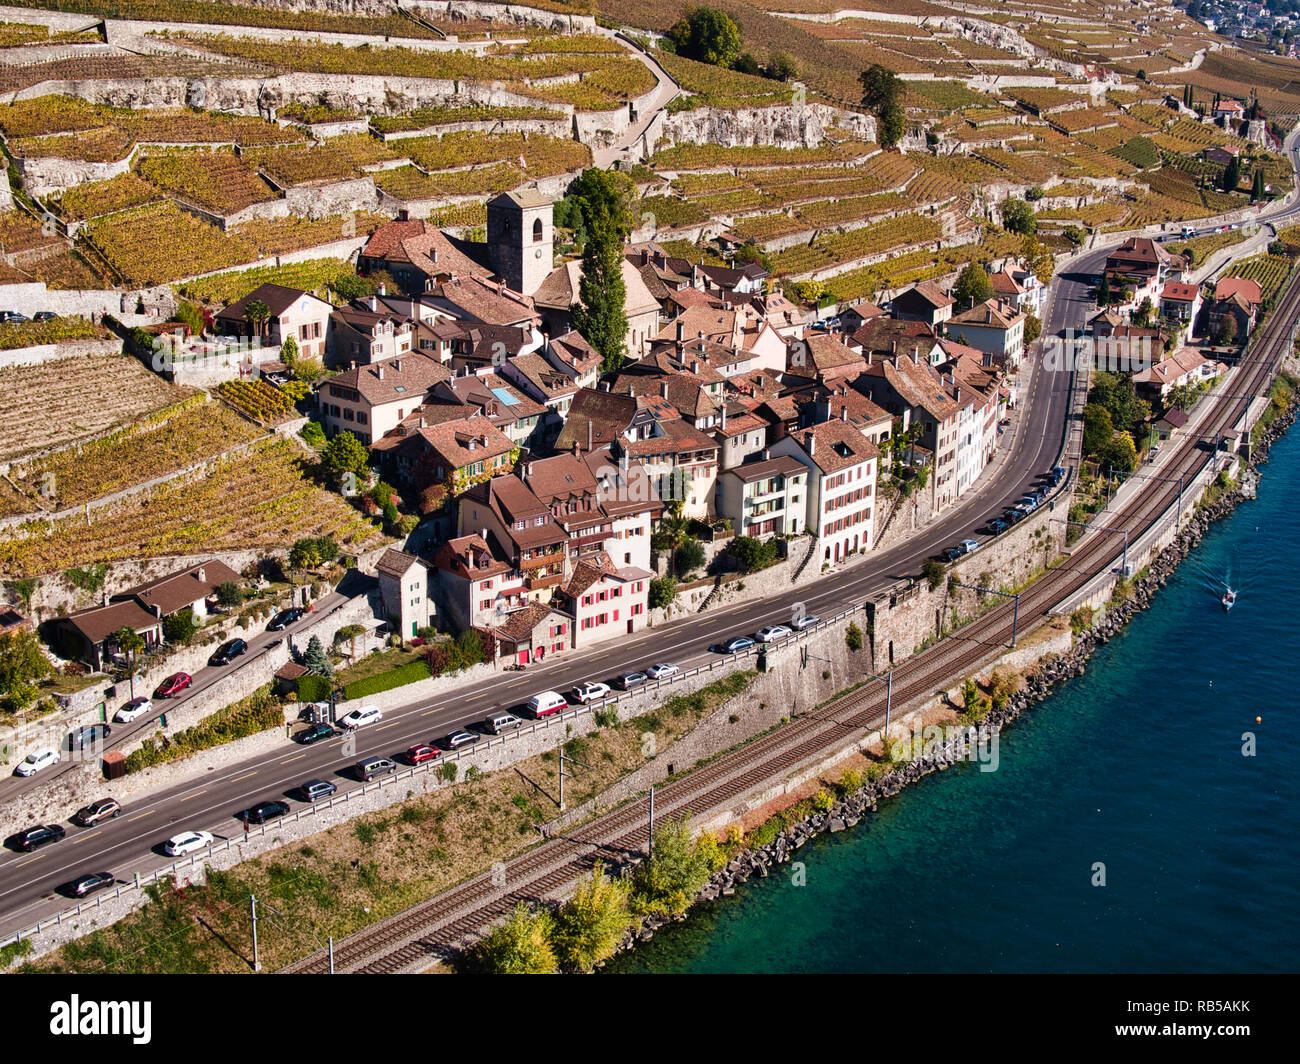 The Swiss Winemaker Village of  Saint-Saphorin in the UNESCO world cultural heritage area Lavaux on the shore of Lake Geneva seen in a drone photograp - Stock Image